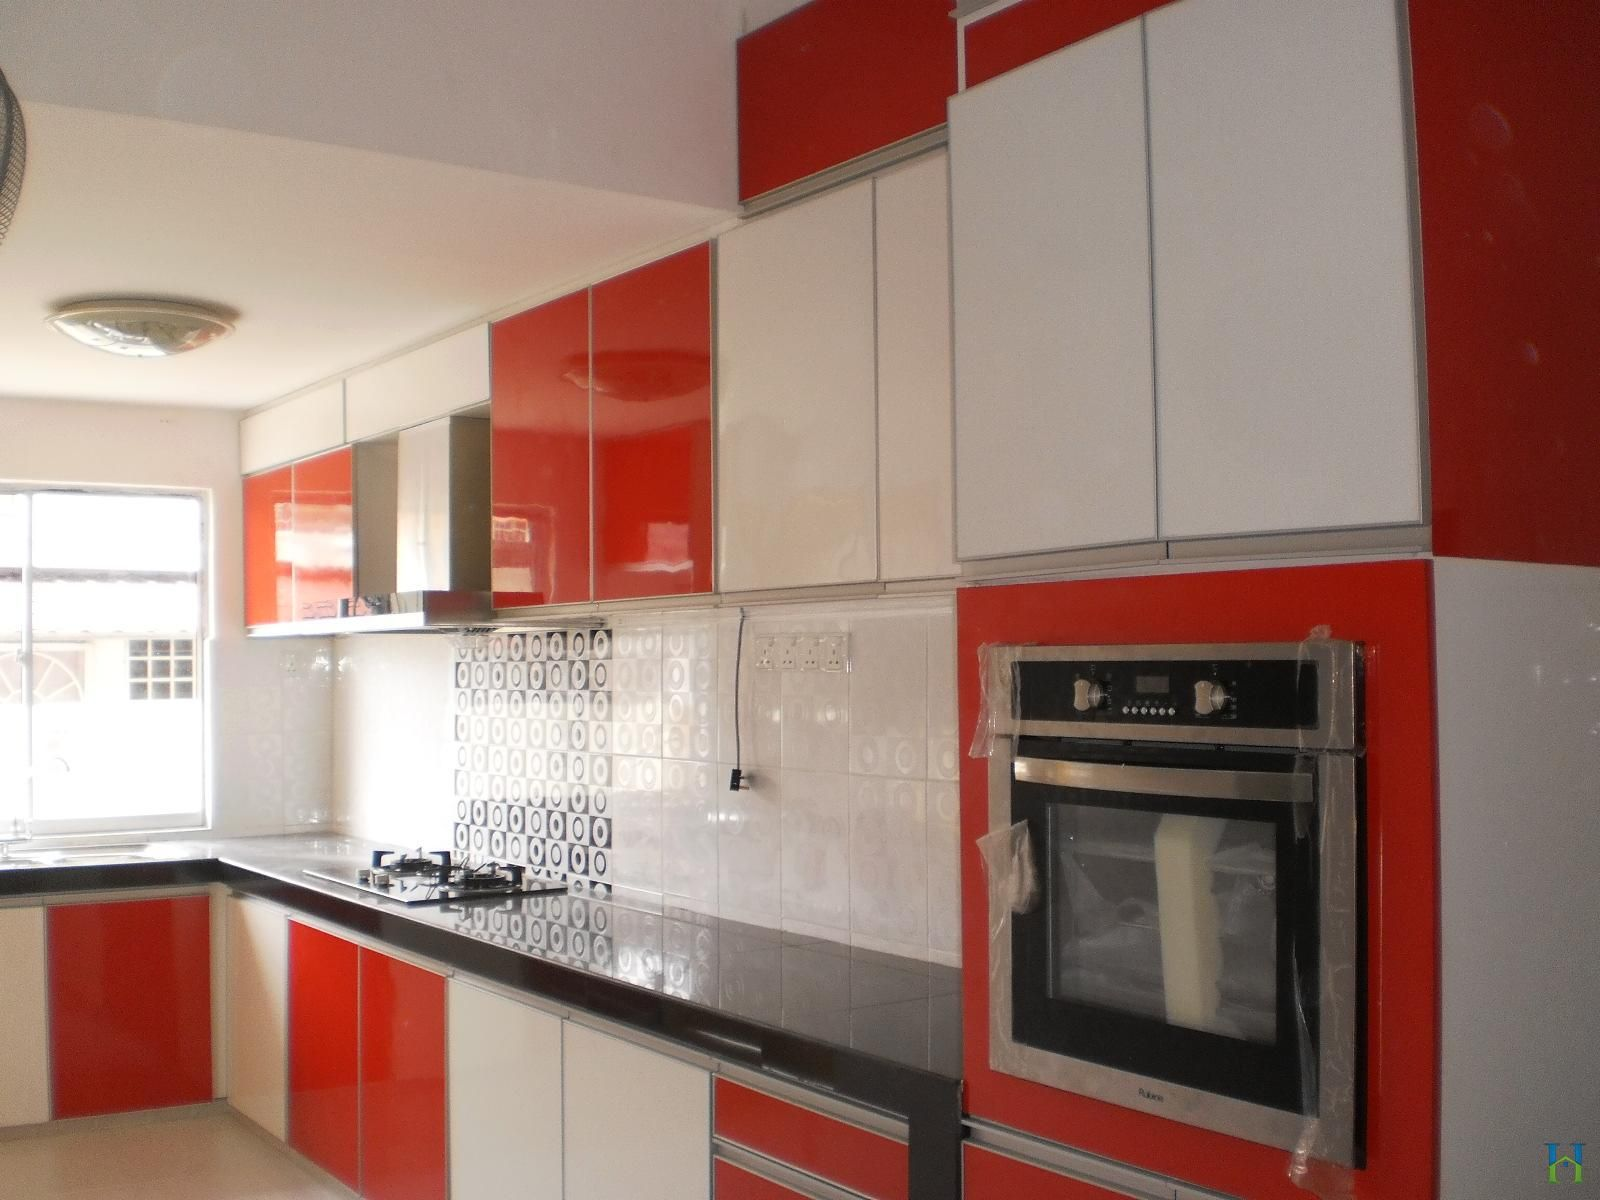 Astounding Red Cabinets And White Acrylic Kitchen Cabinetry Door Panels  With Built In Microwave Shelves In